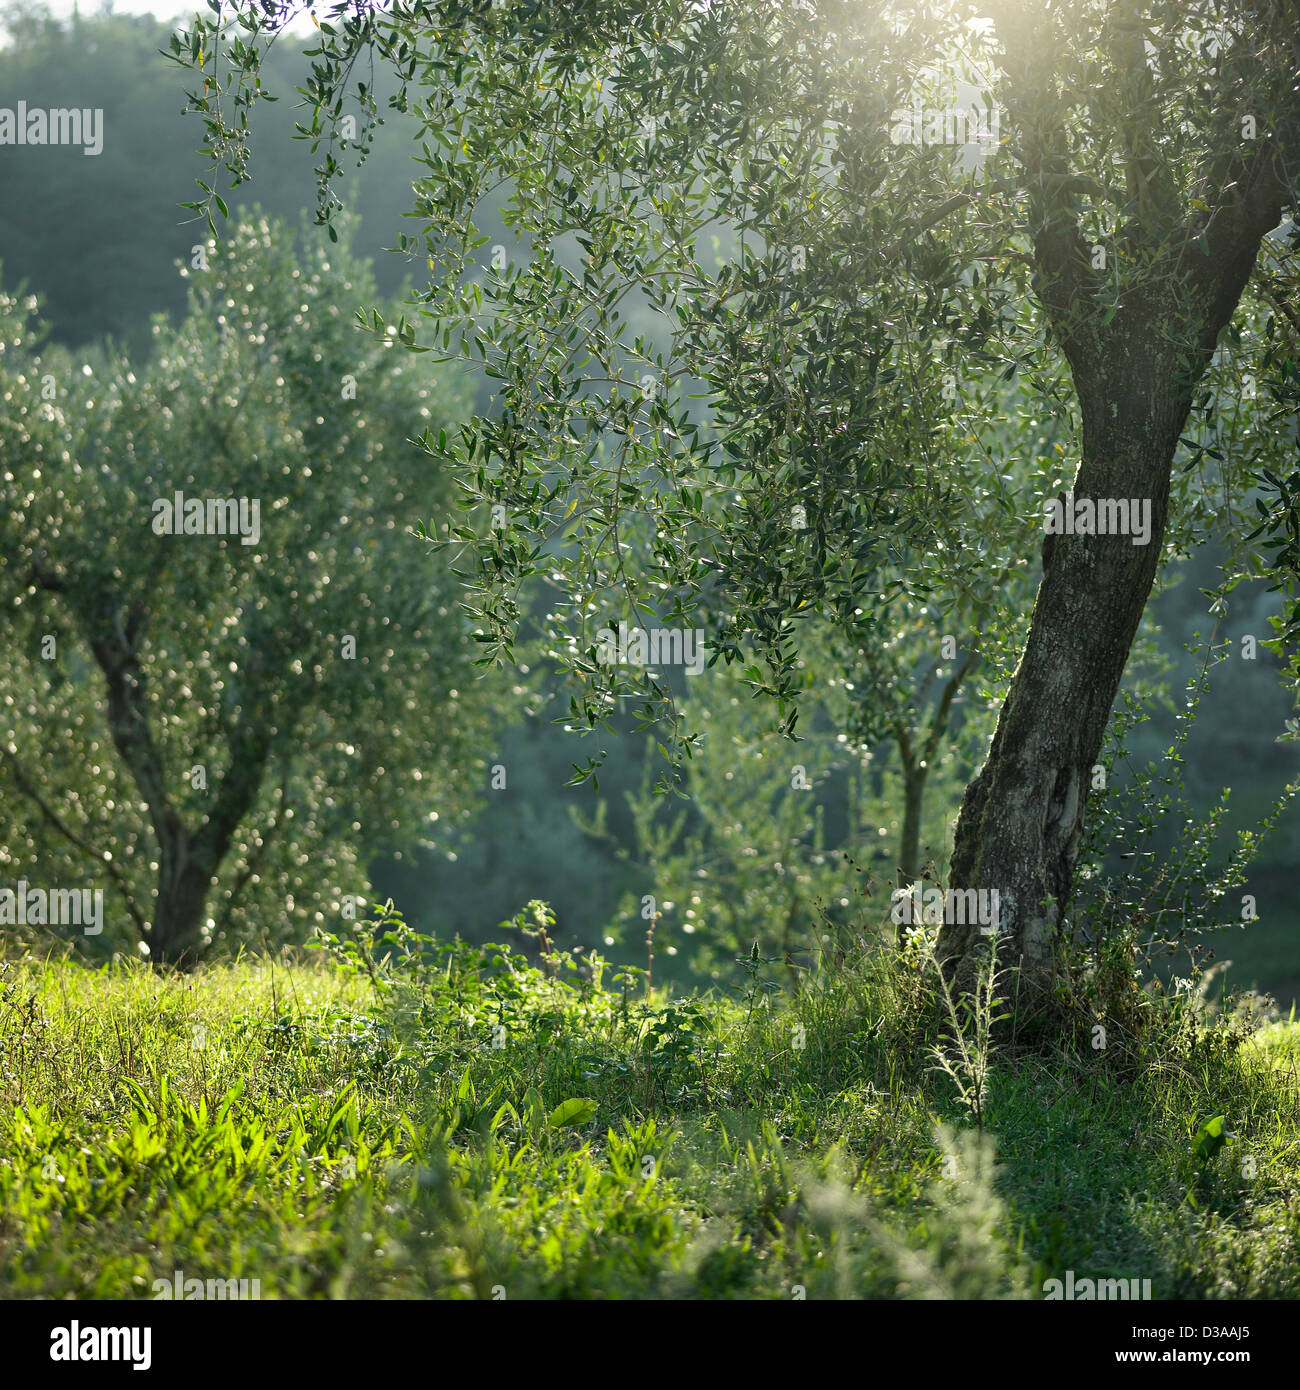 Trees growing in meadow - Stock Image